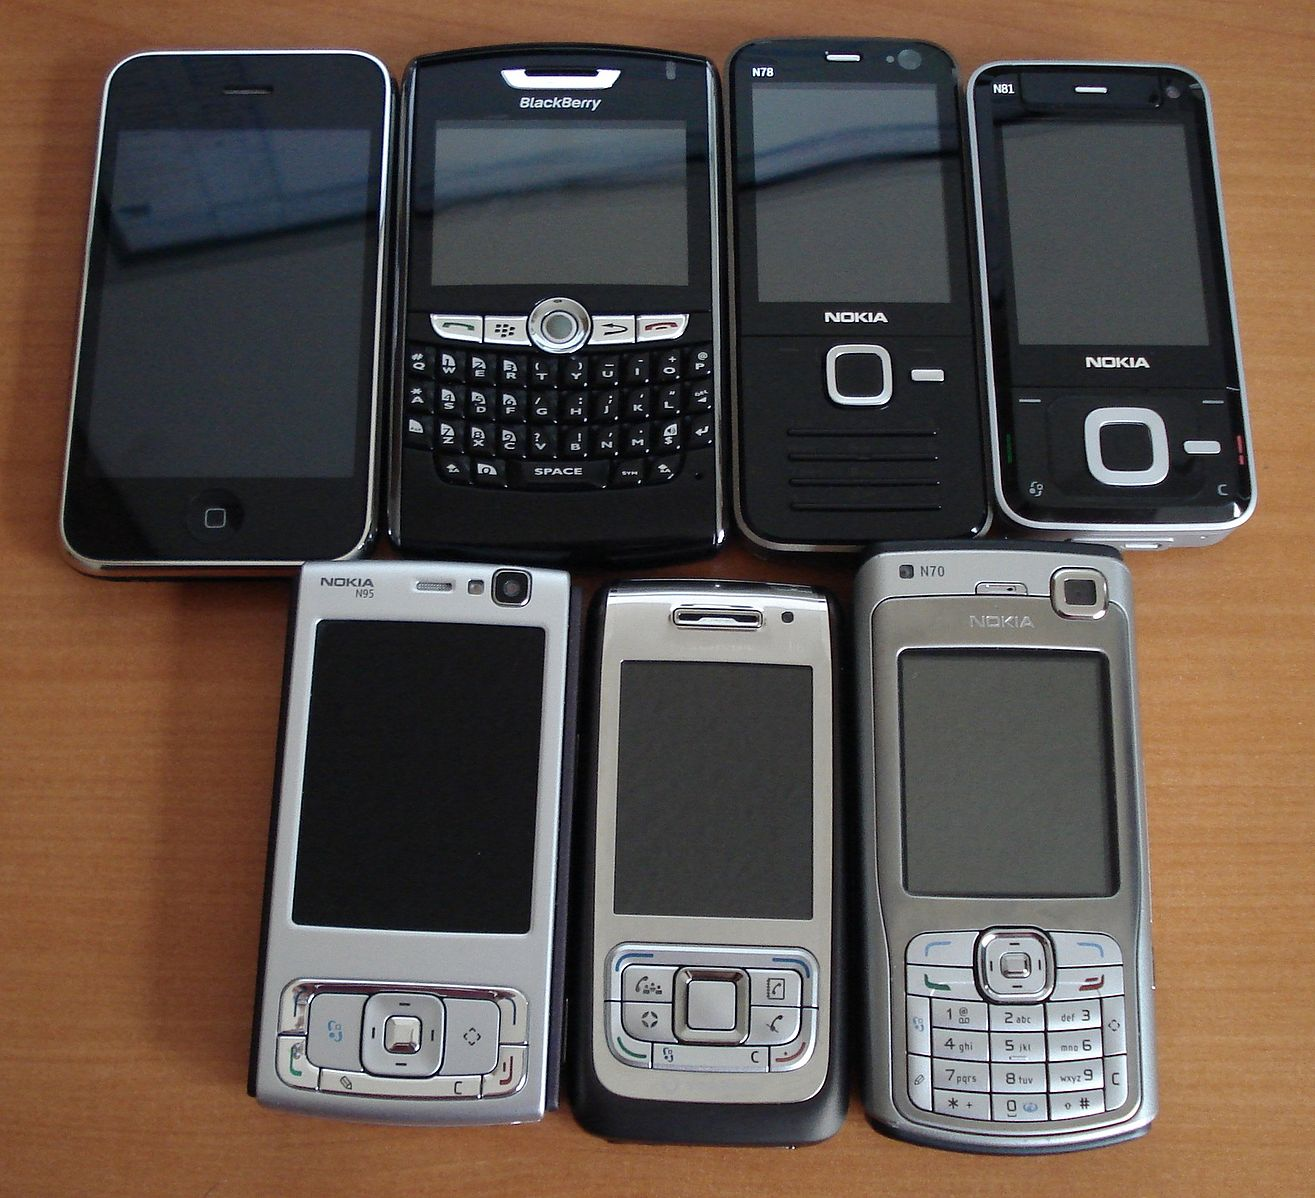 LG, phones, iPhone, Hydrogen One, Red